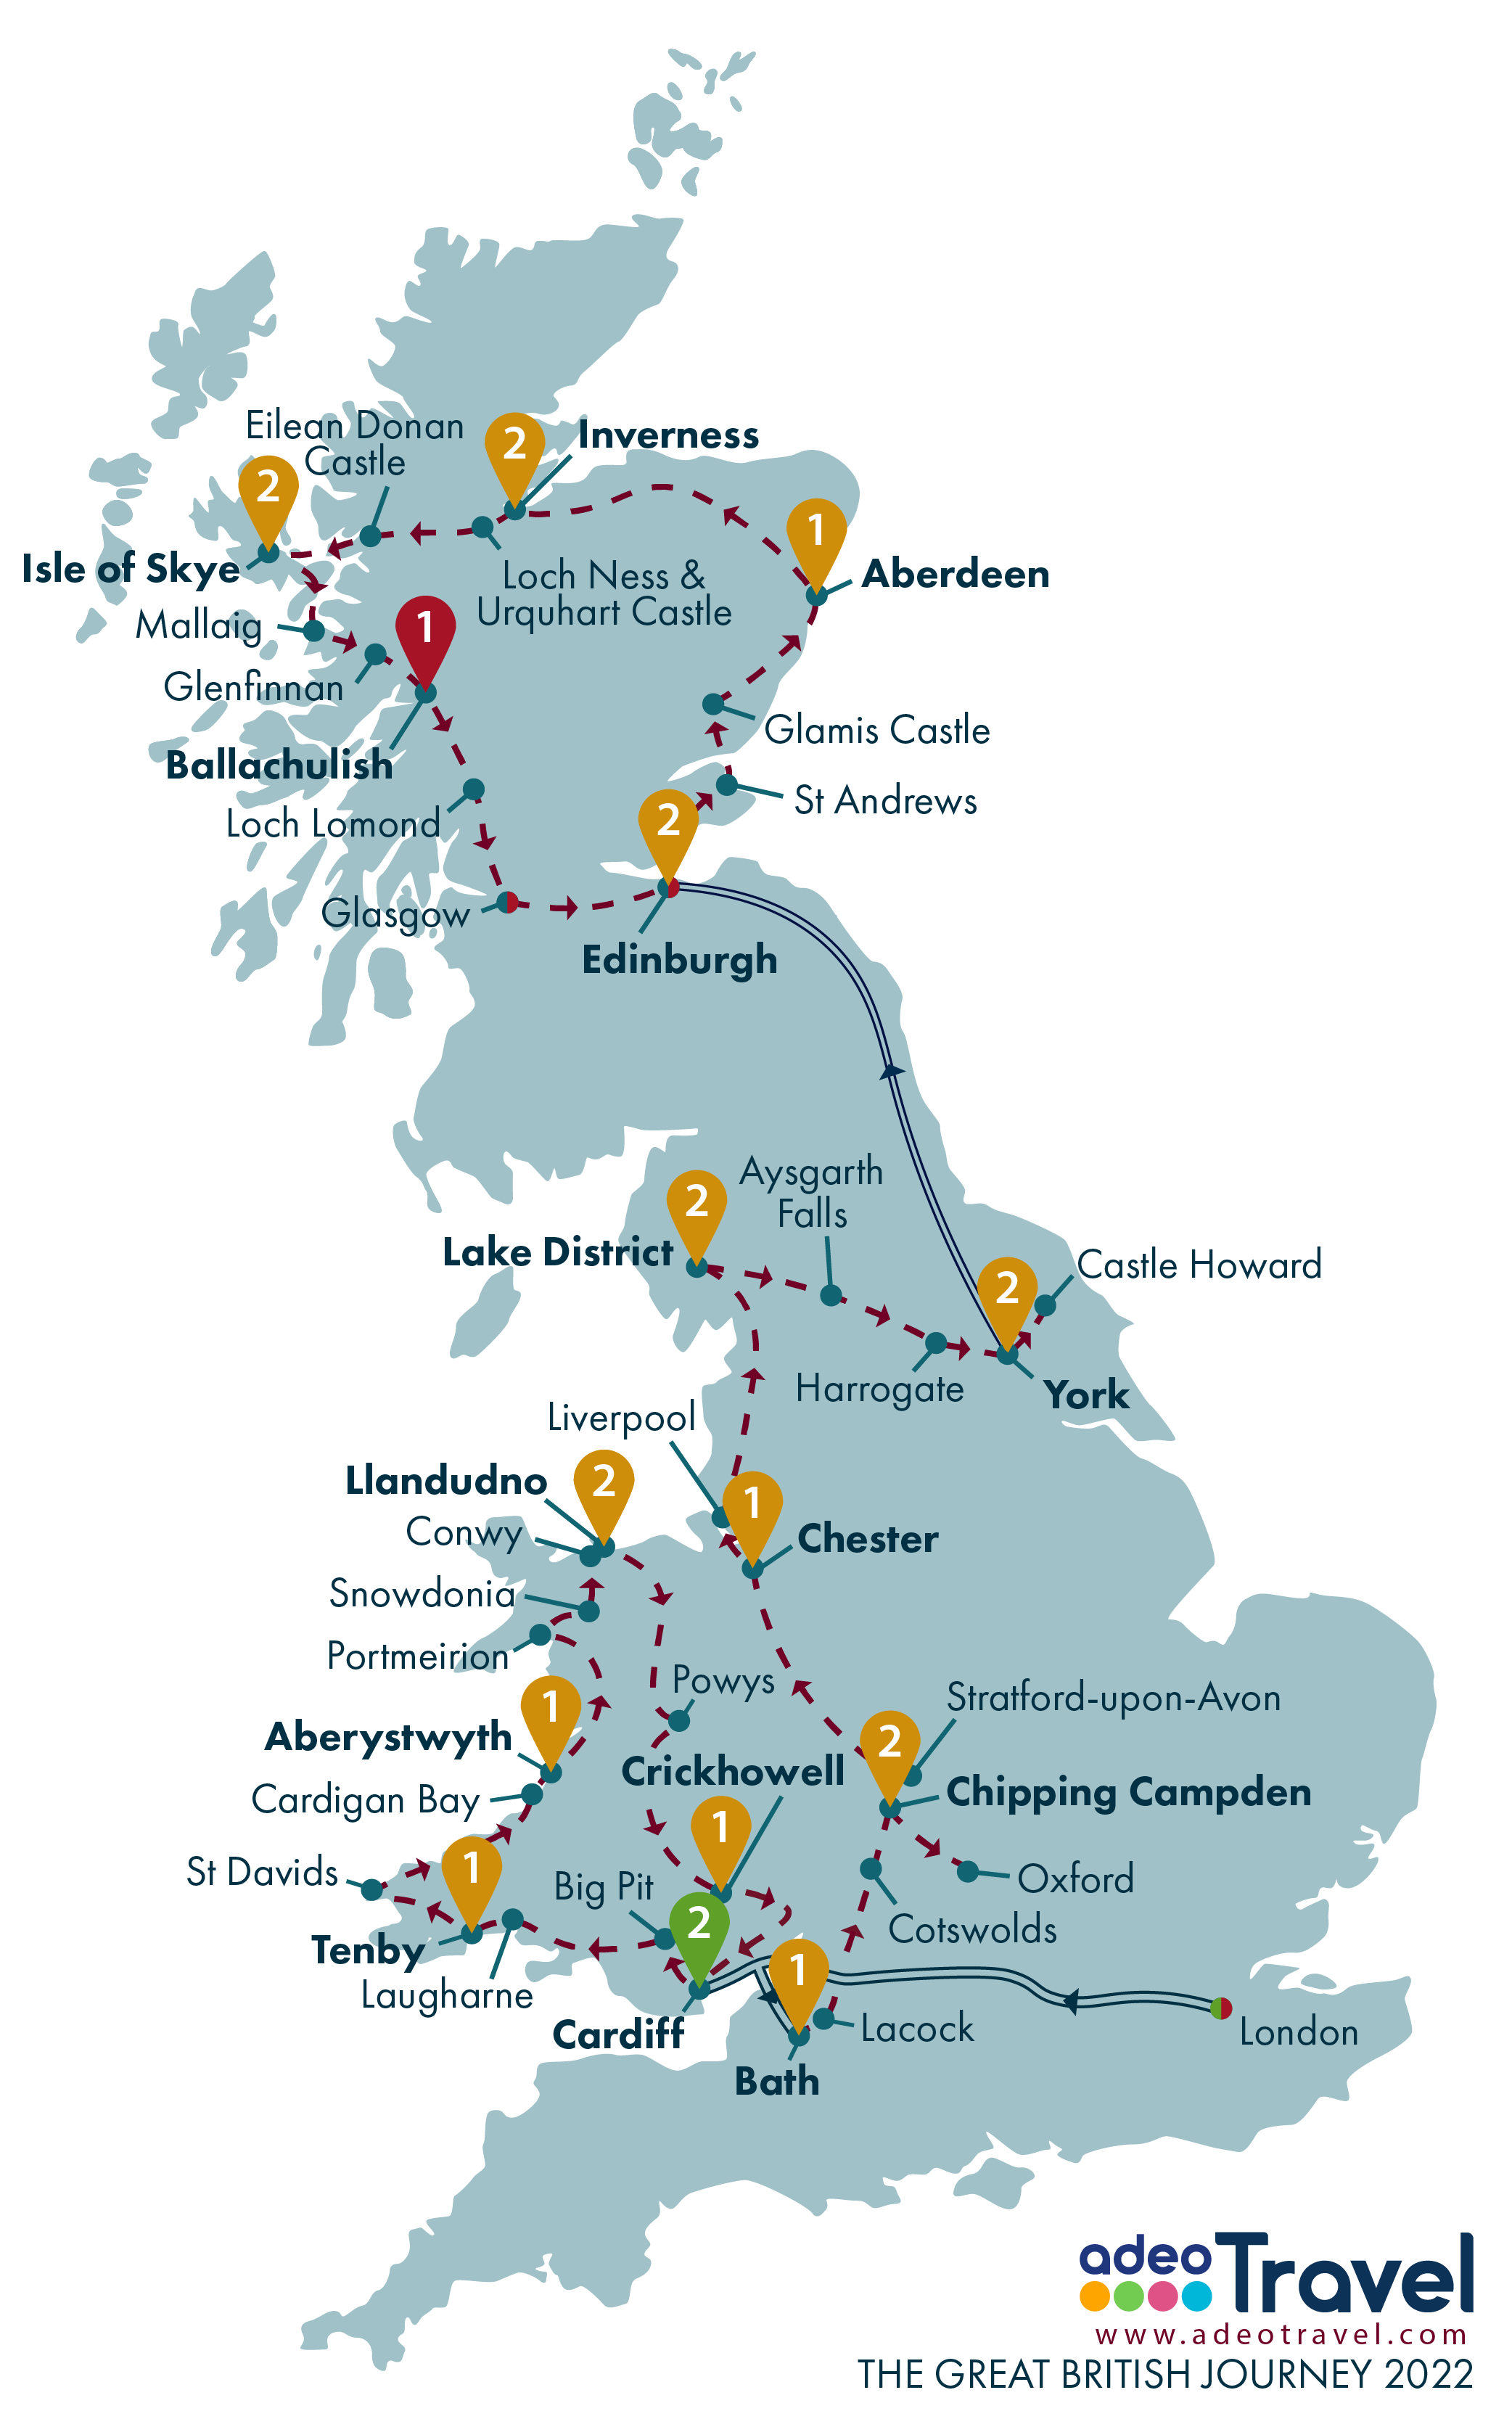 Map - The Great British Journey 2022